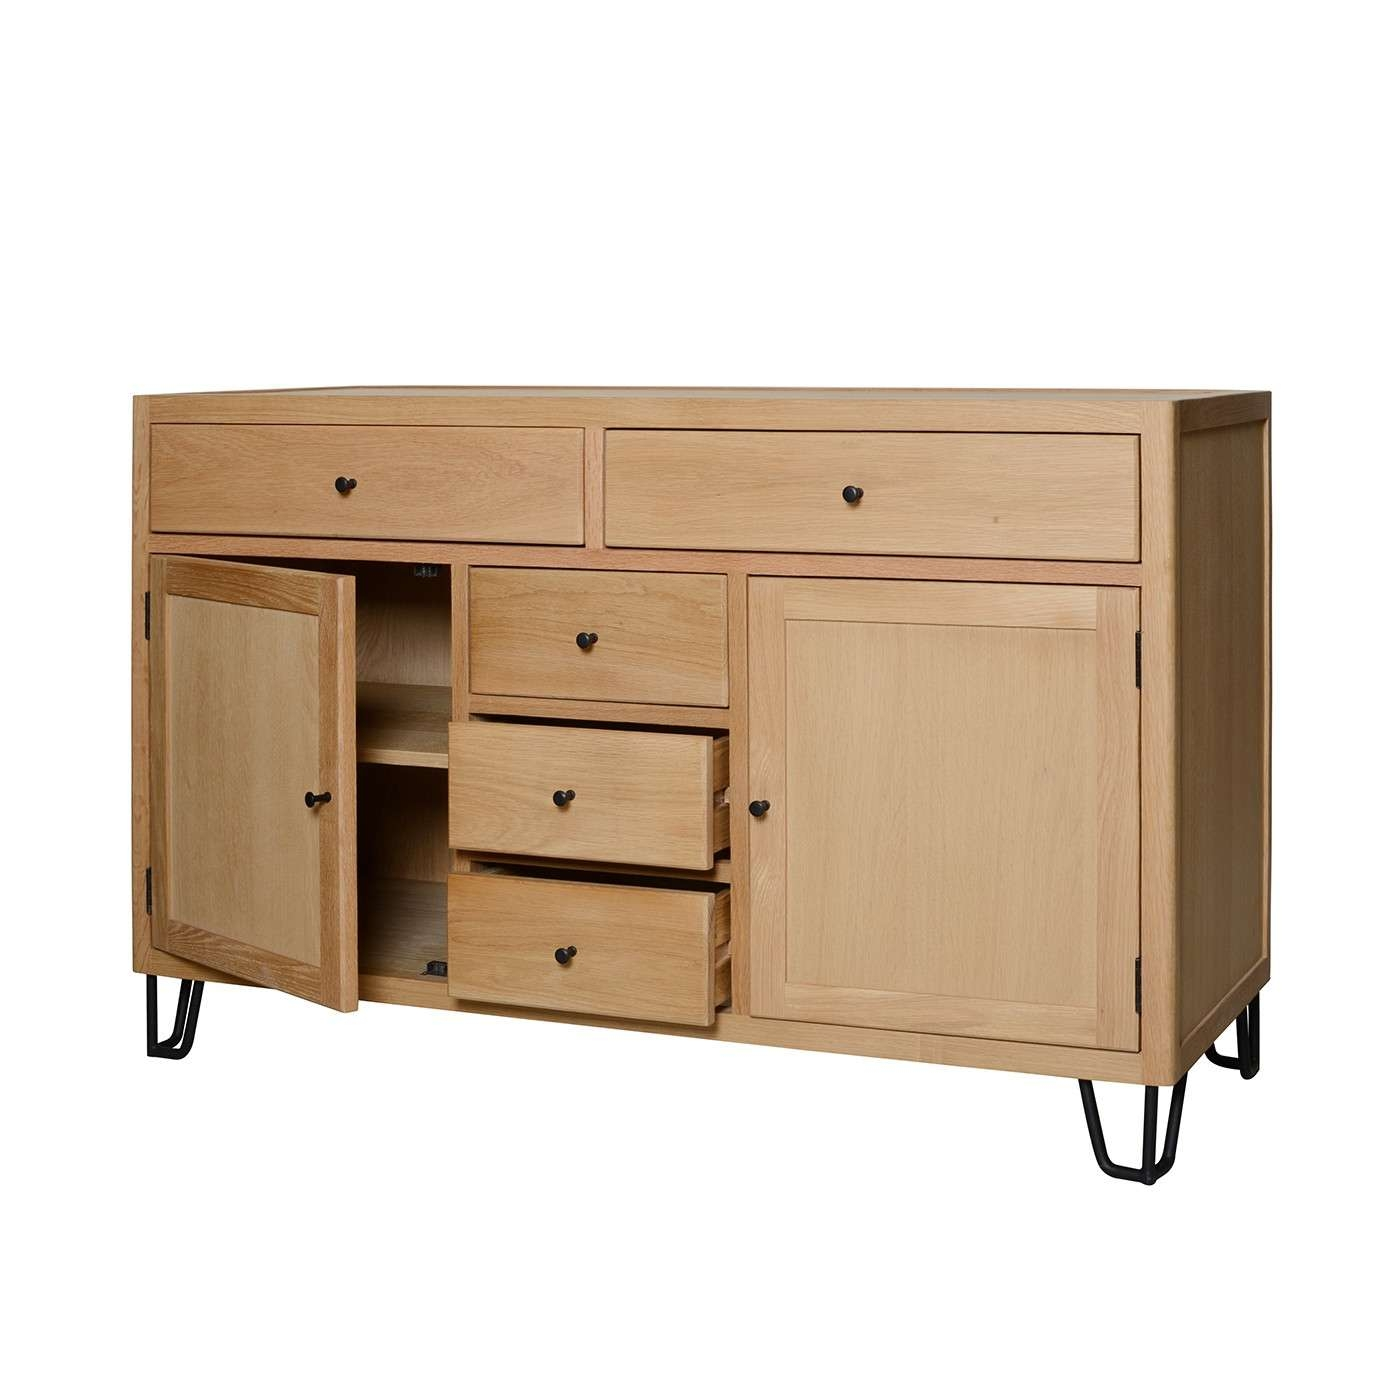 Designer Modern Sideboards ~ Collection of contemporary sideboards